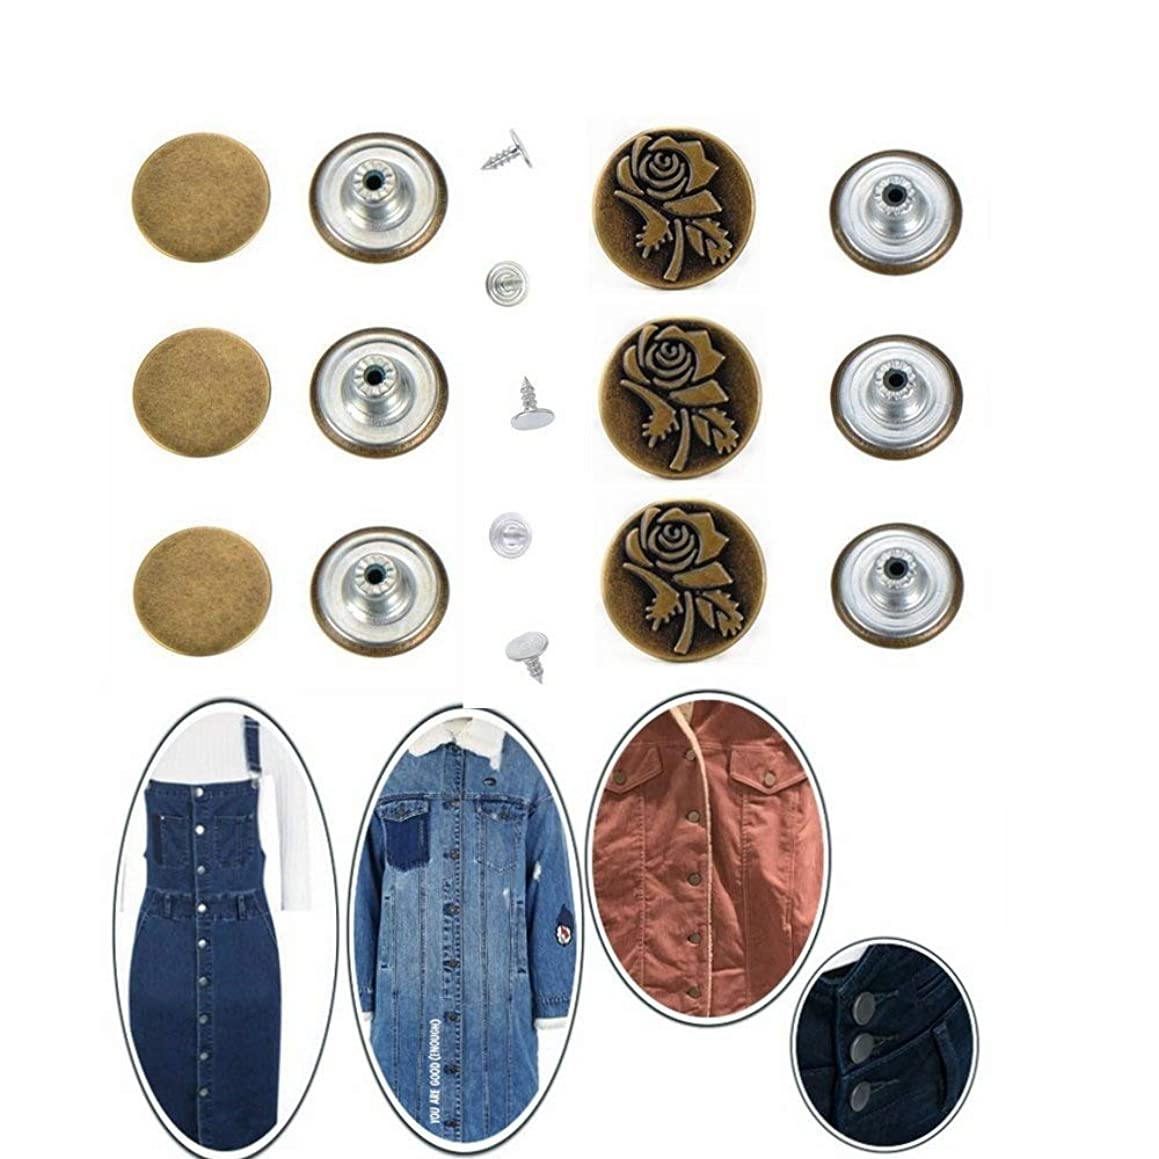 YALEX 50 Sets Jeans Buttons Metal Button Snap Buttons Replacement Kit with Rivets,2 Styles, Bronze